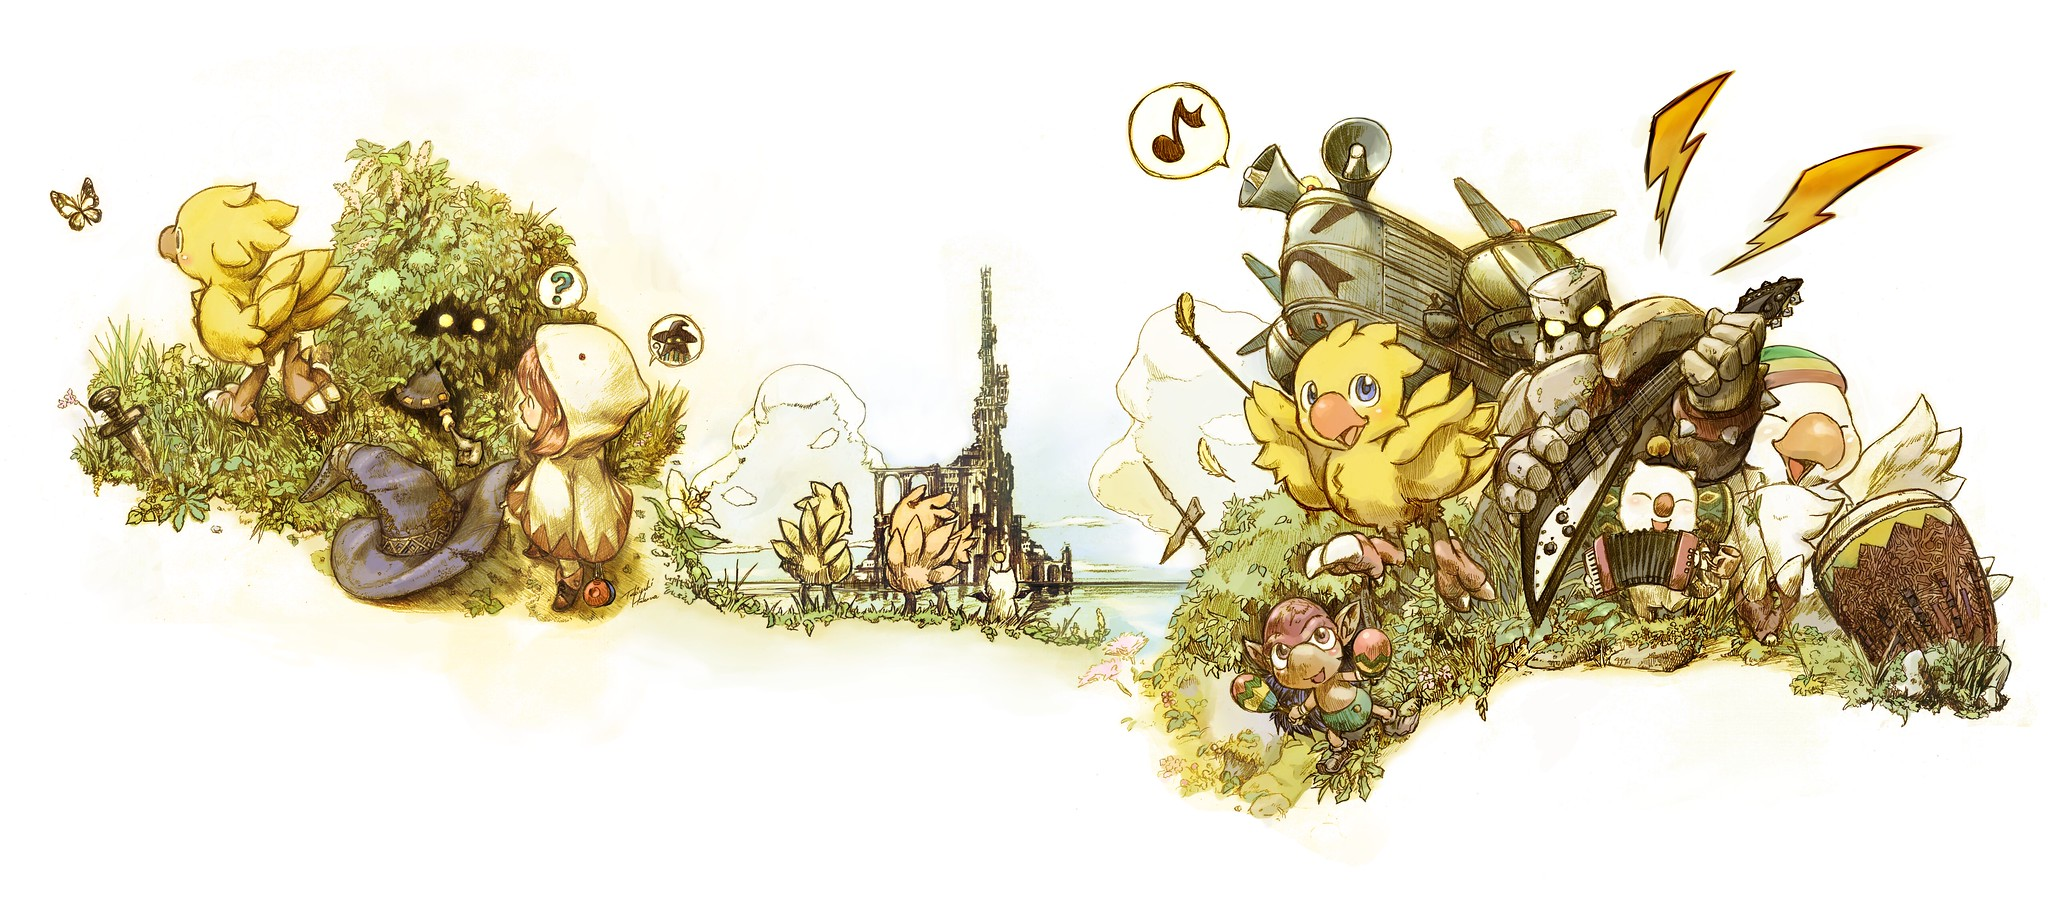 Chocobo's Mystery Dungeon Every Buddy! Out Today, Character Designer